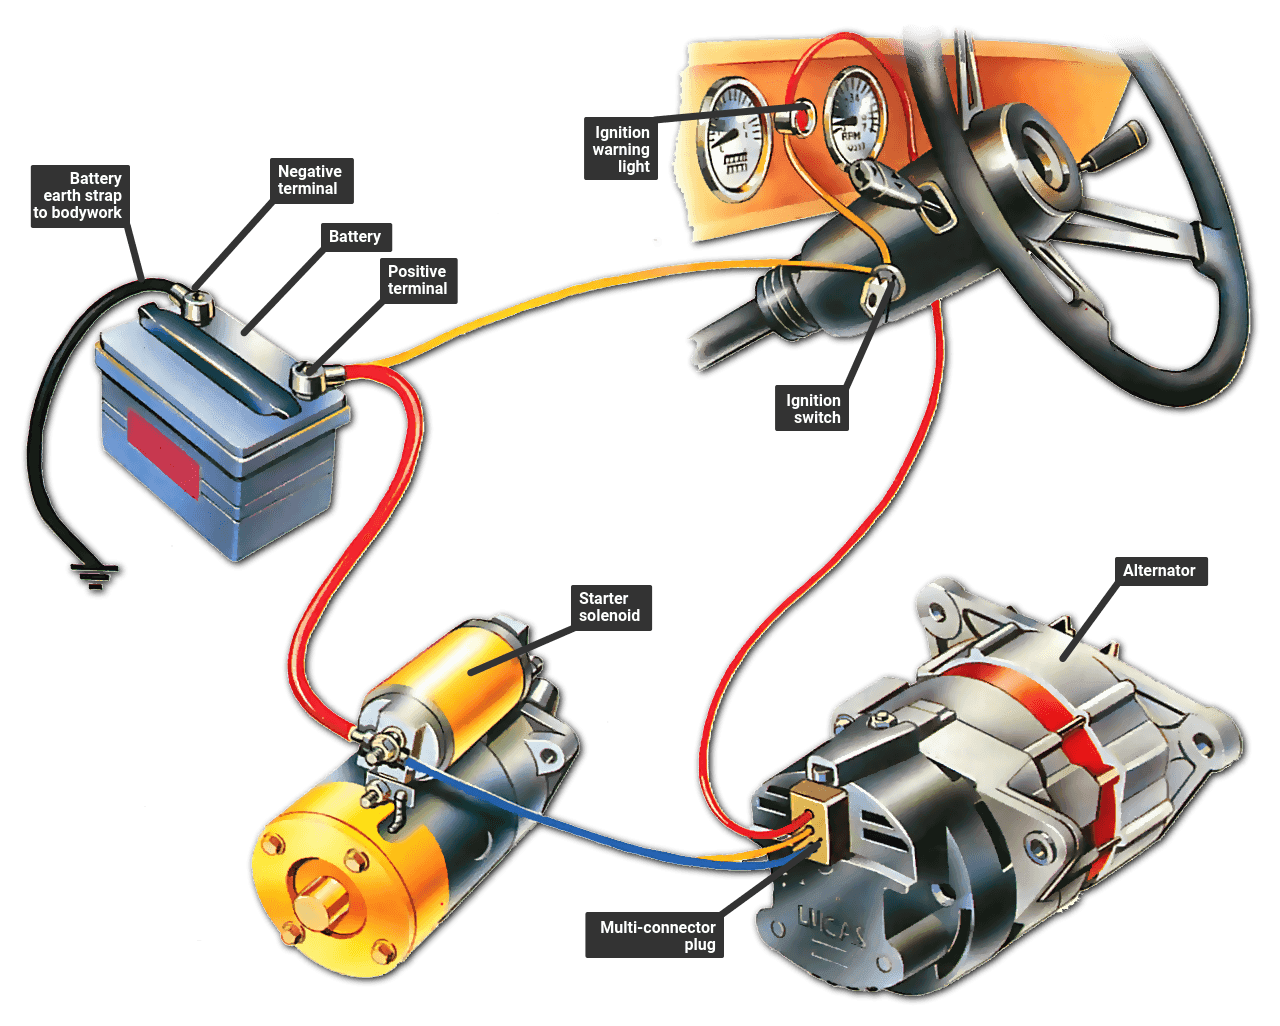 Troubleshooting The Ignition Warning Light How A Car Works Automobile Wiring Basics